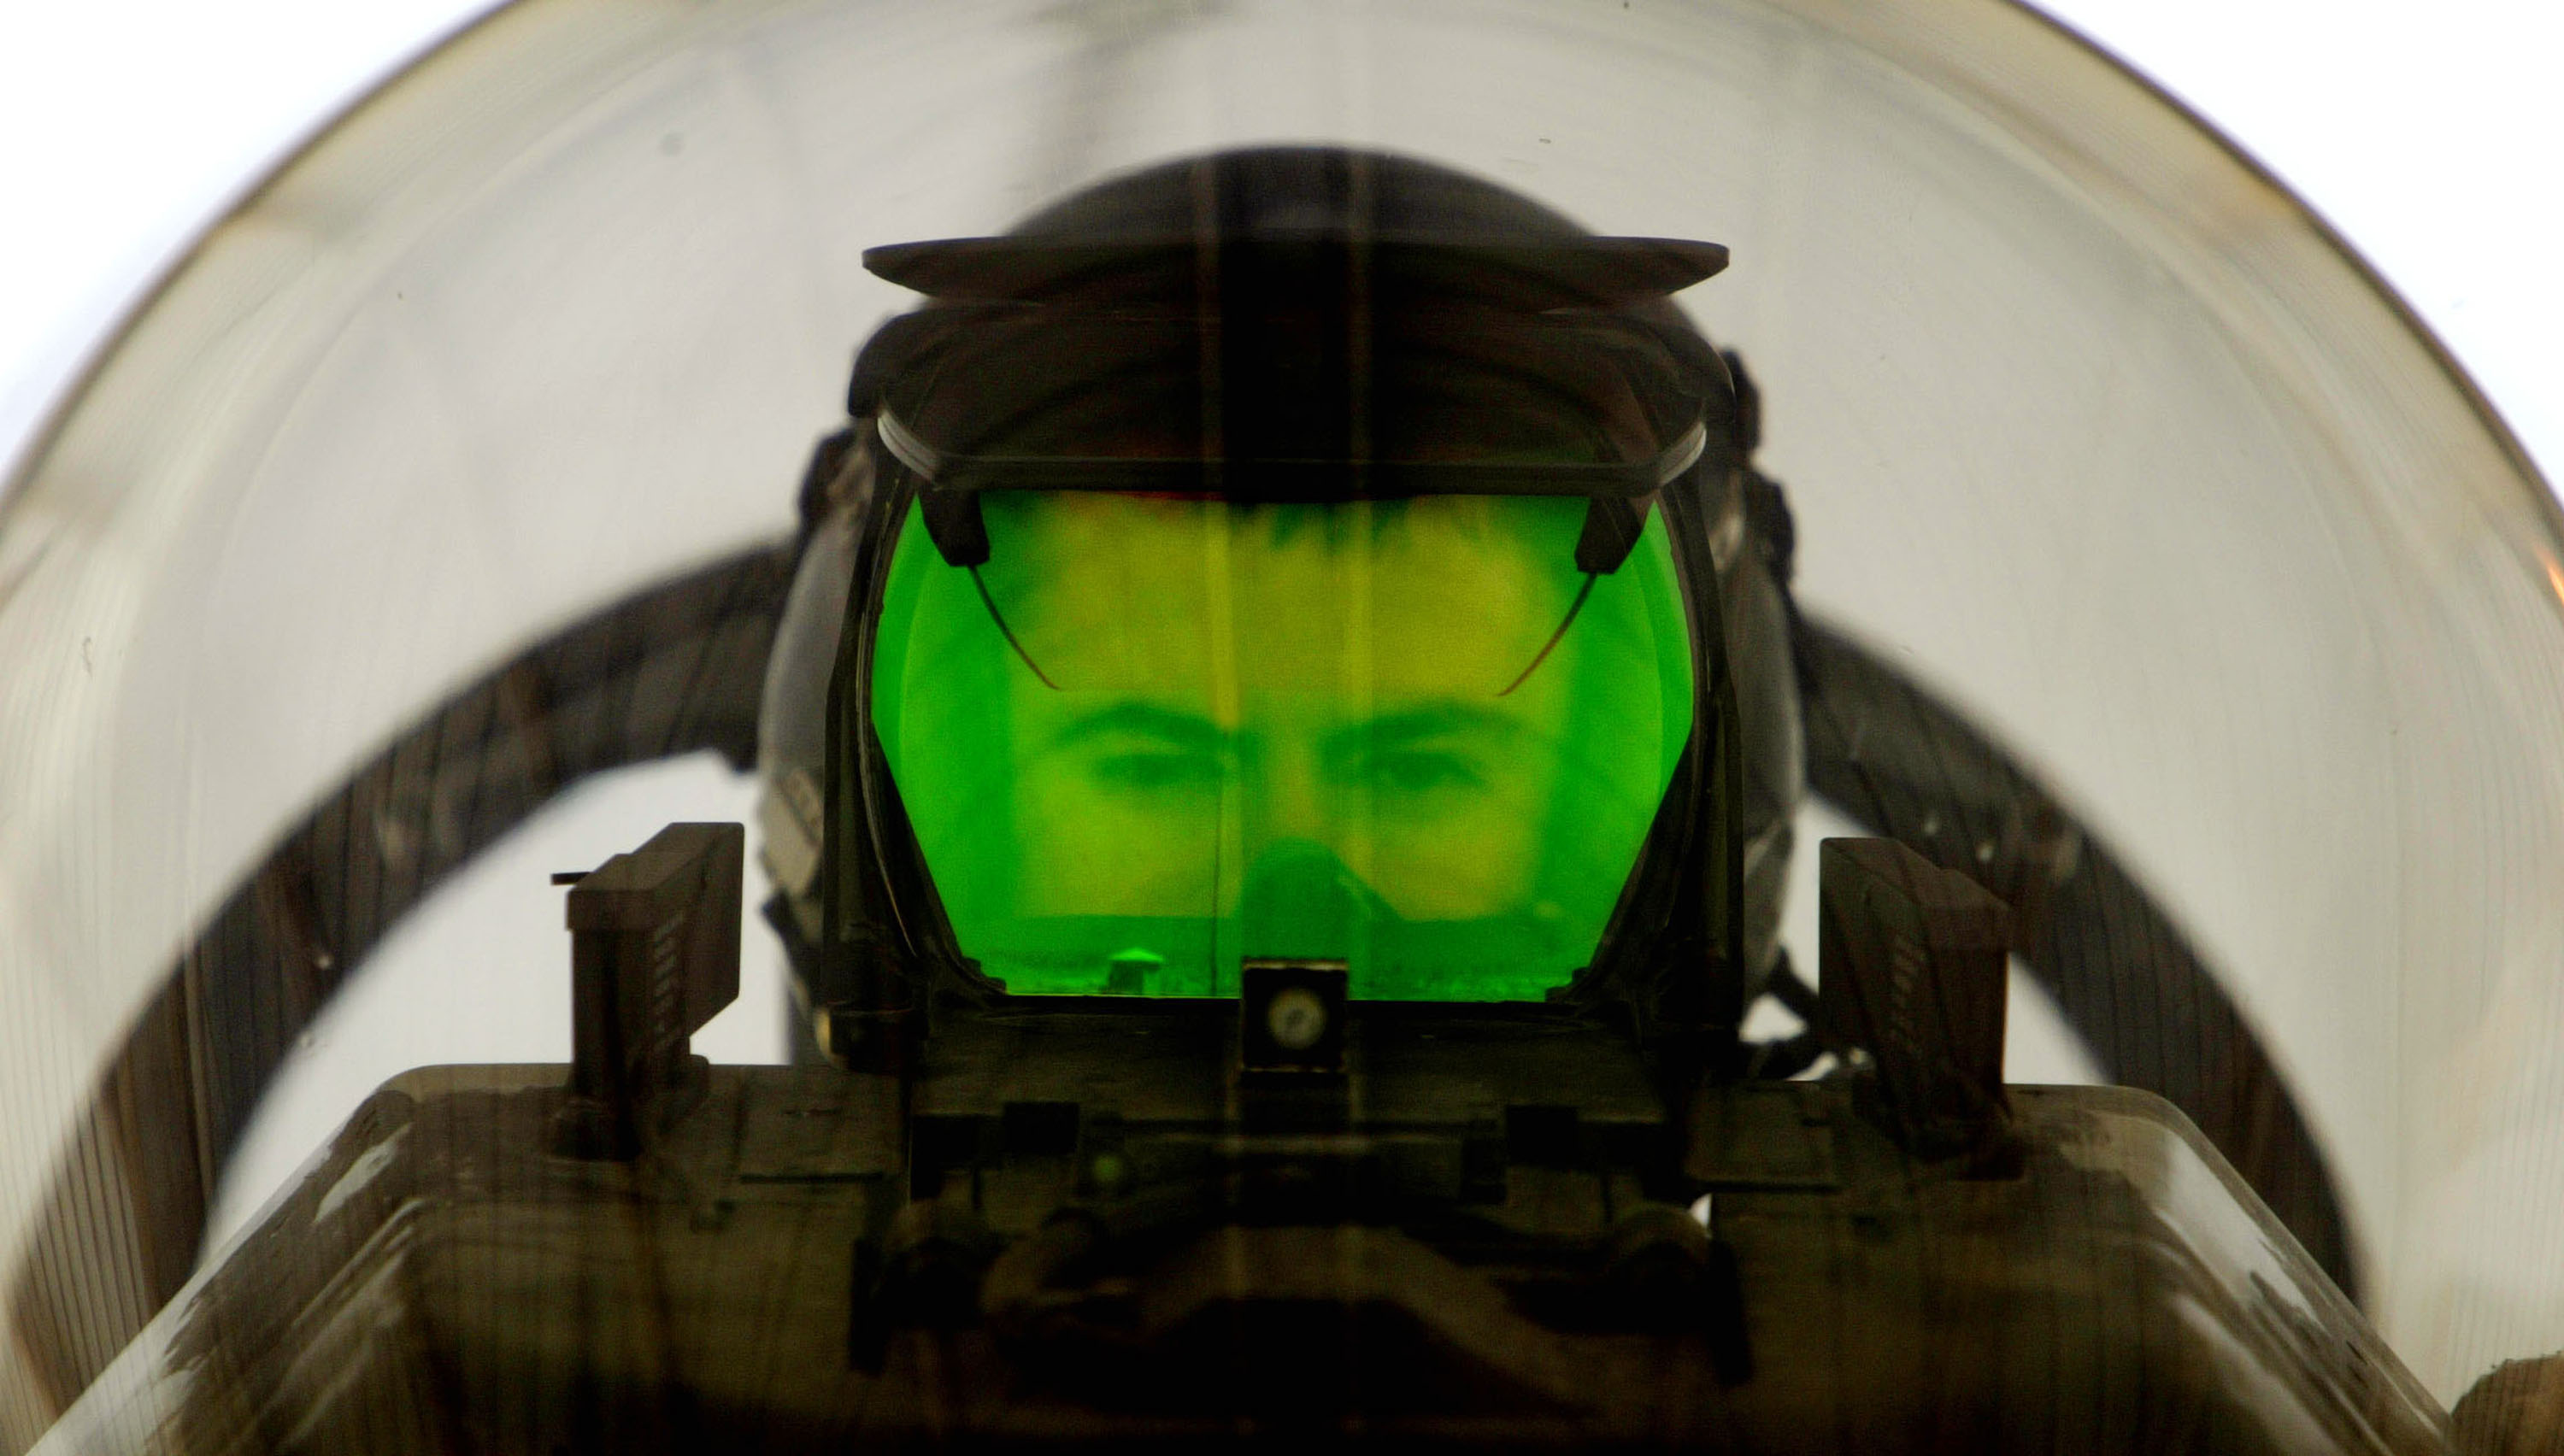 A U.S. Air Force pilot looks through the Heads Up Display (HUD) of his F-16  Fighting Falcon  as he prepares to deploy on a mission April 2, 2003 at an air base near the Iraqi border.